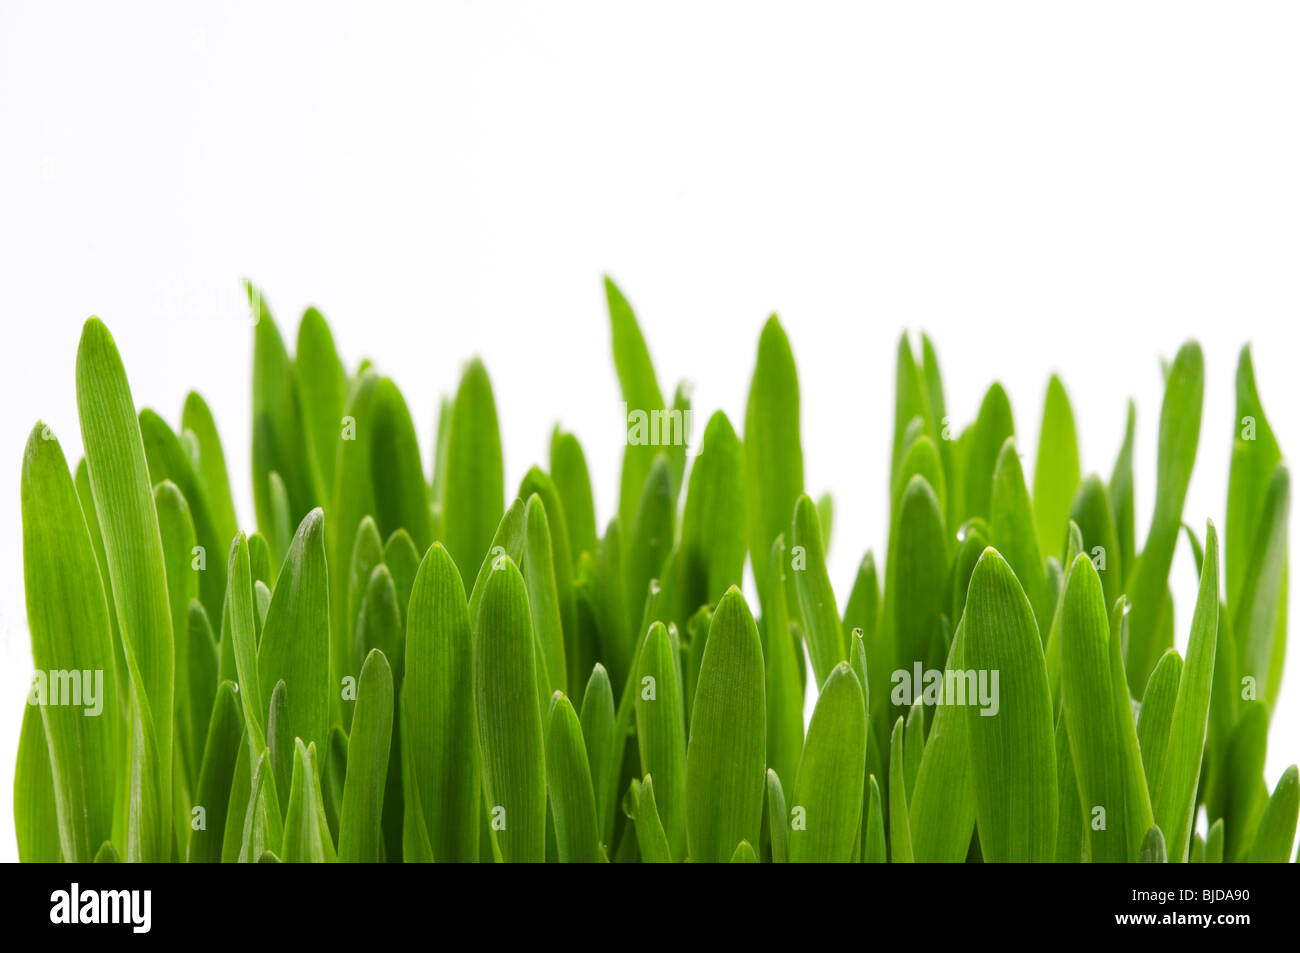 Blades of green grass on a white background - Stock Image